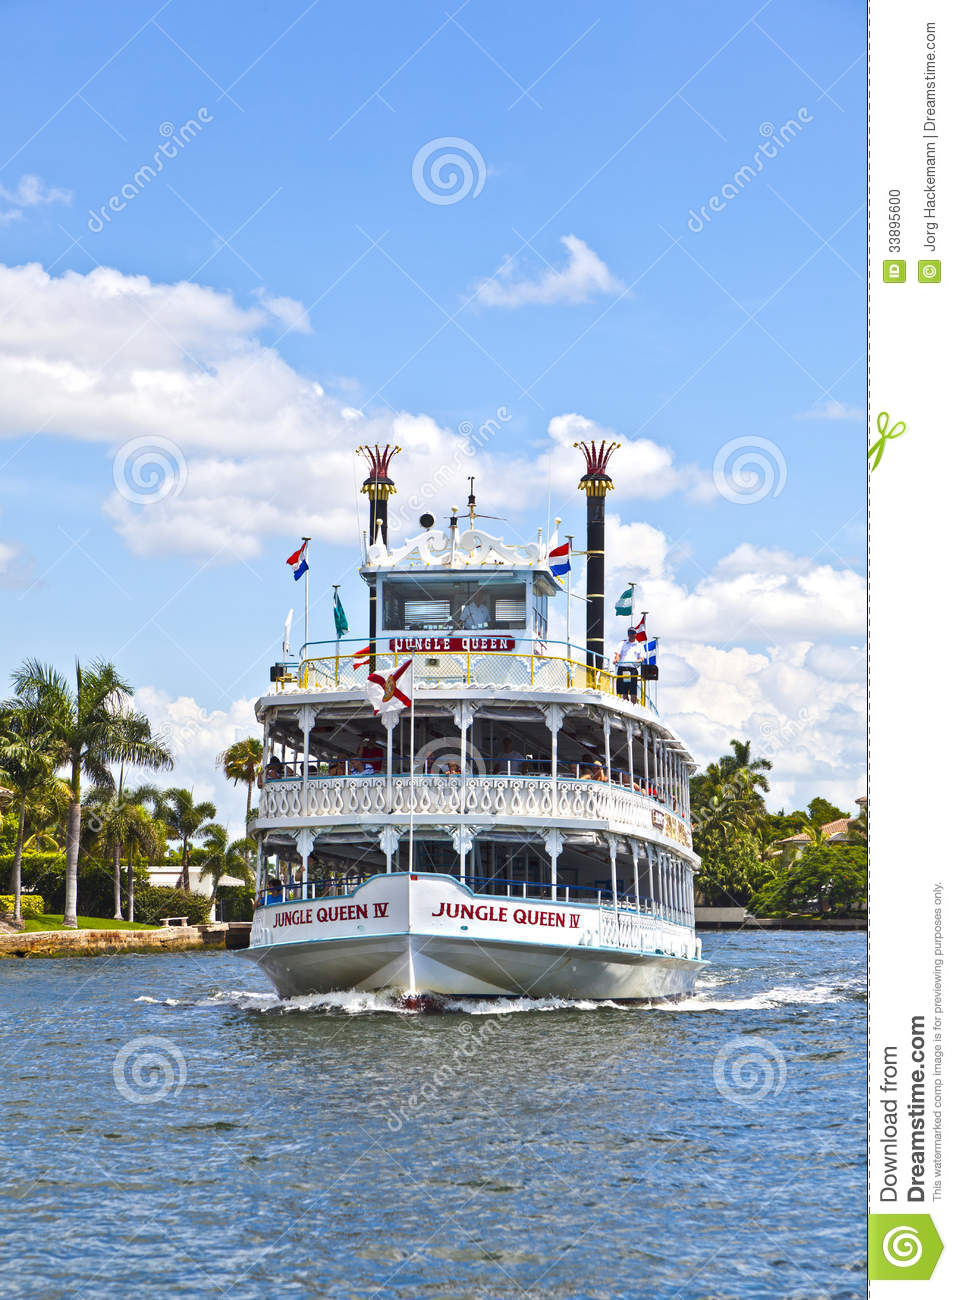 Cruise With Jungle Queen Riverboat Editorial Image